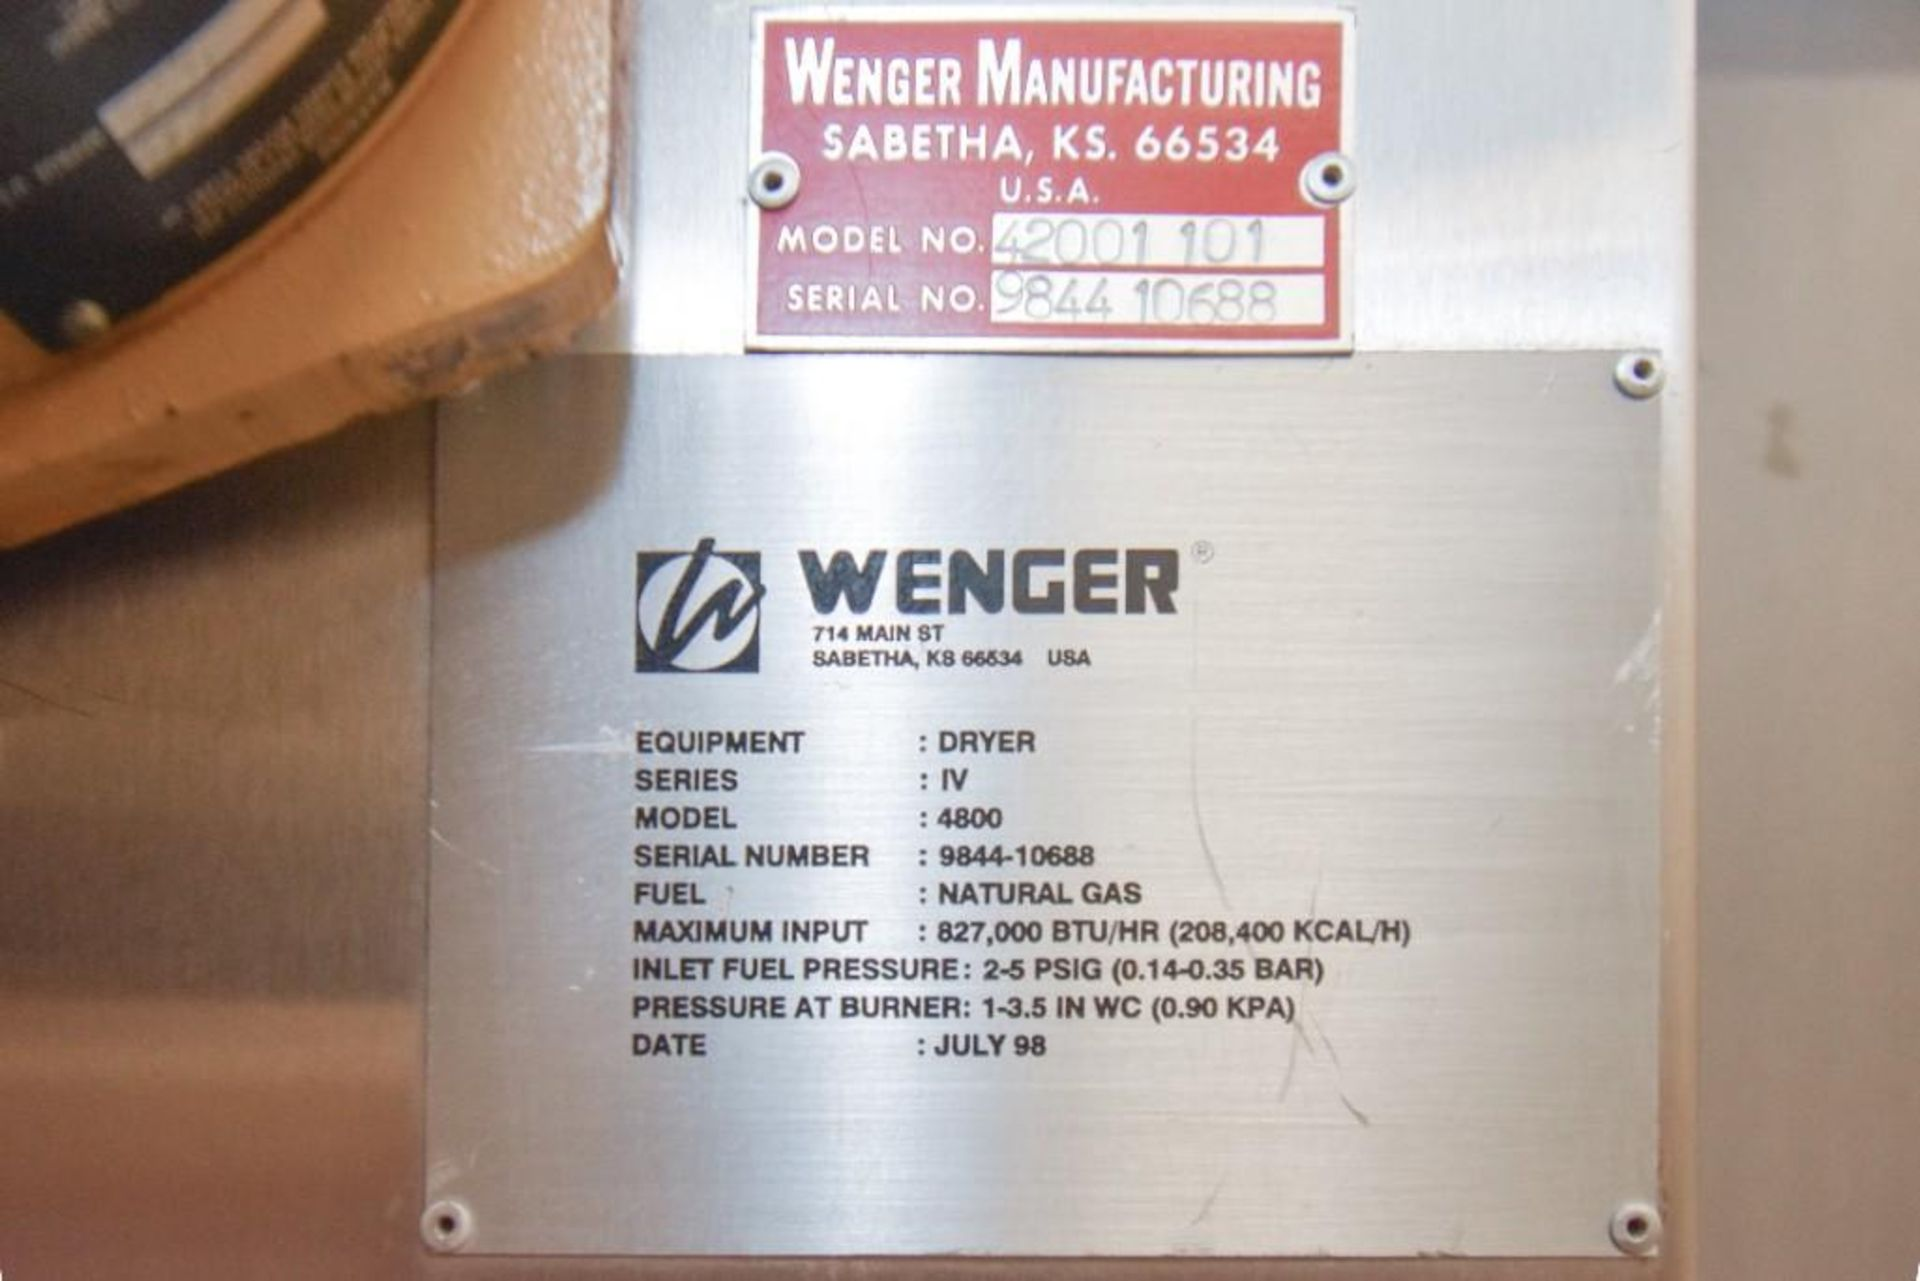 Wenger Dryer Oven Series IV 4800 - Image 7 of 7